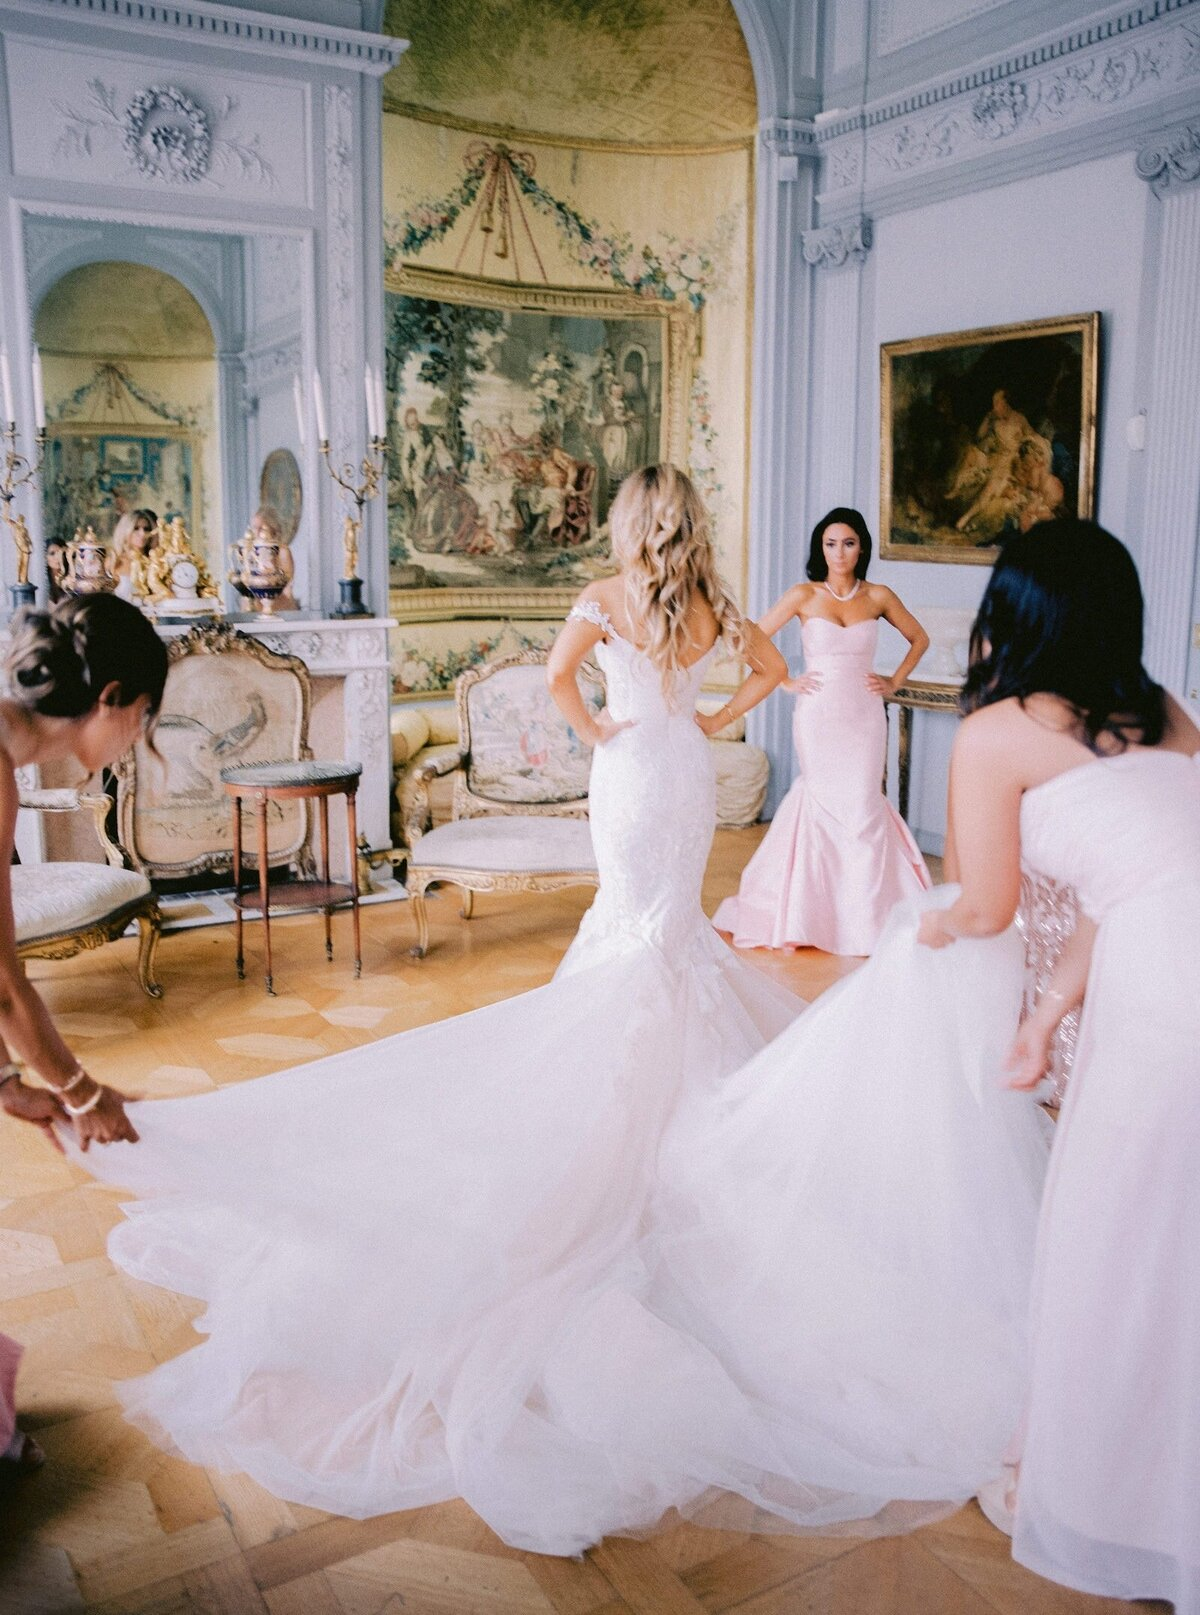 villa-ephrussi-luxury-wedding-phototographer-on-the-french-riviera (49 of 74)